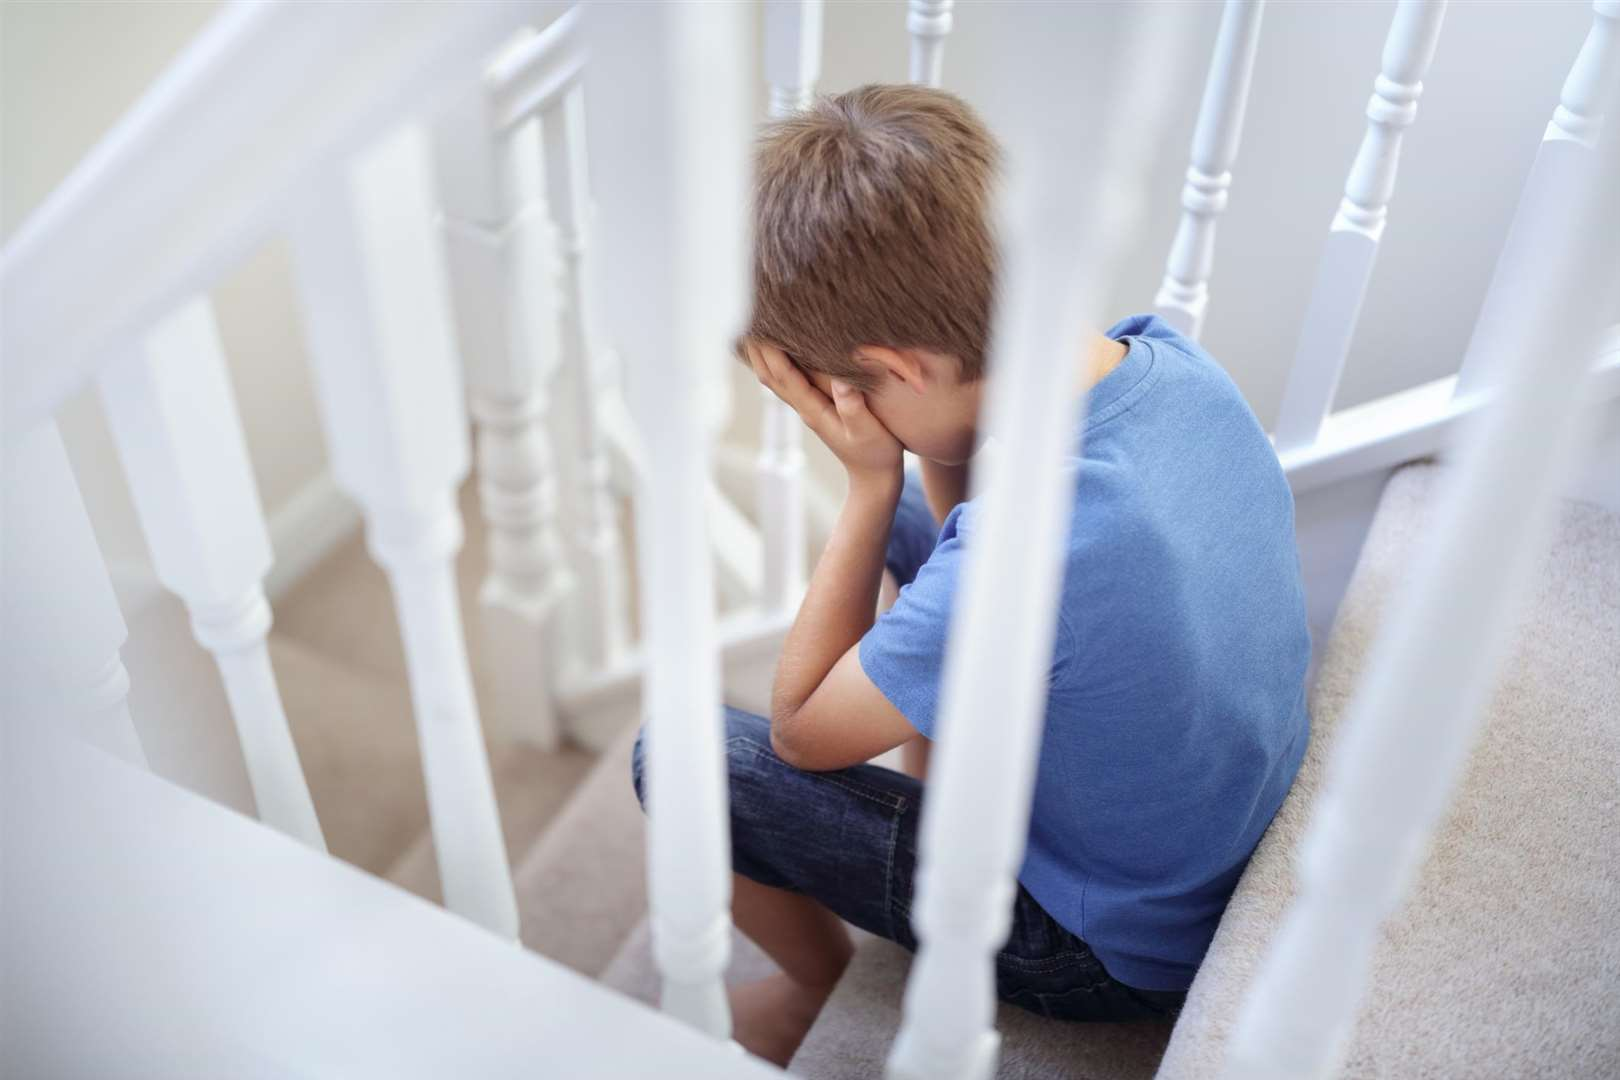 Thousands of children contact Childline to talk about physical abuse